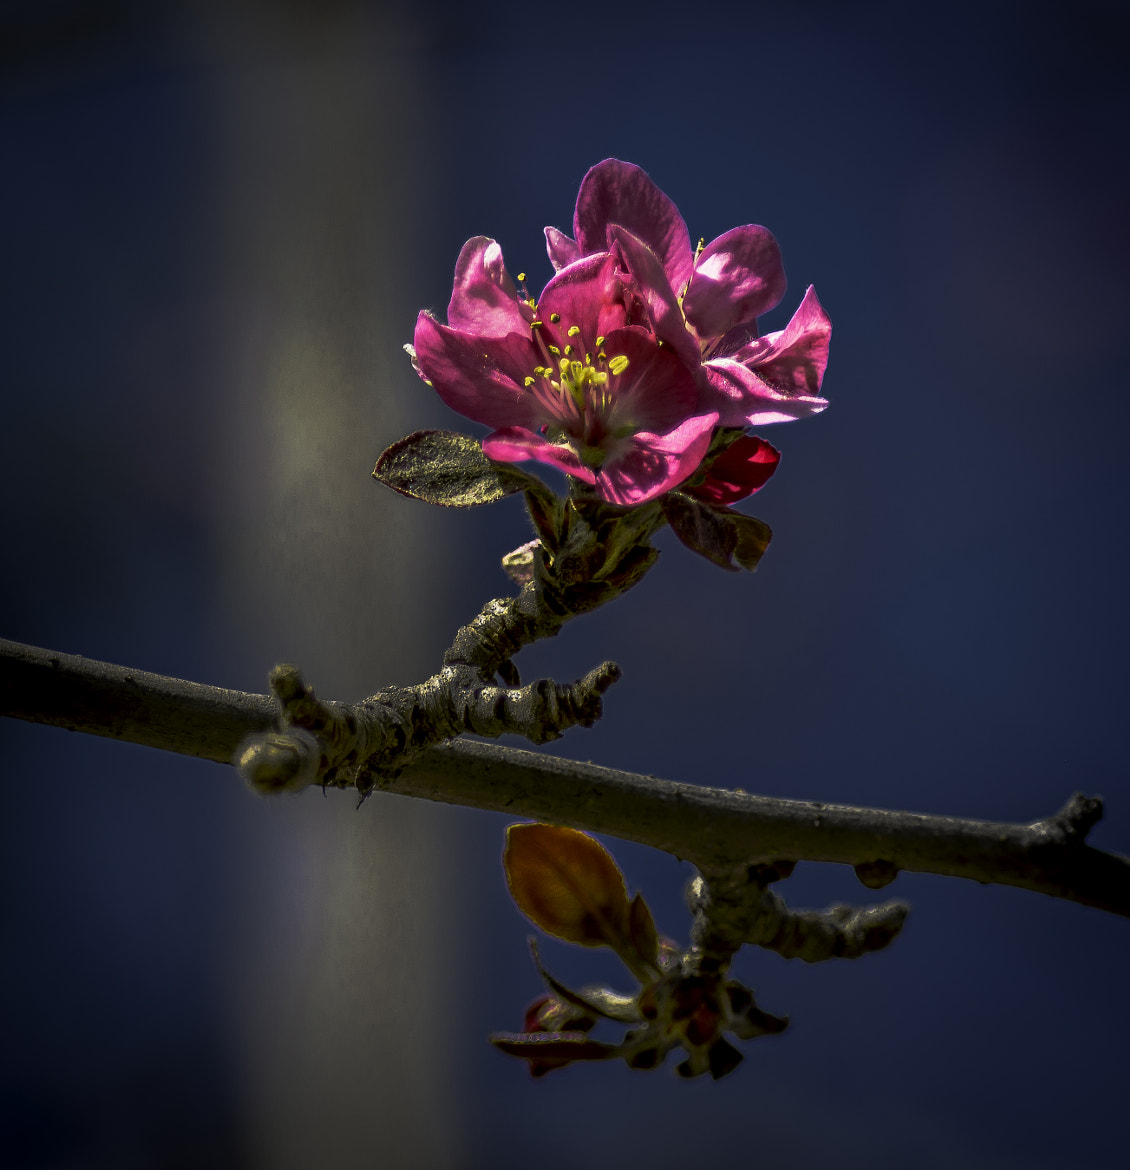 Photograph Spring Blossom 1 by Lou Lu on 500px